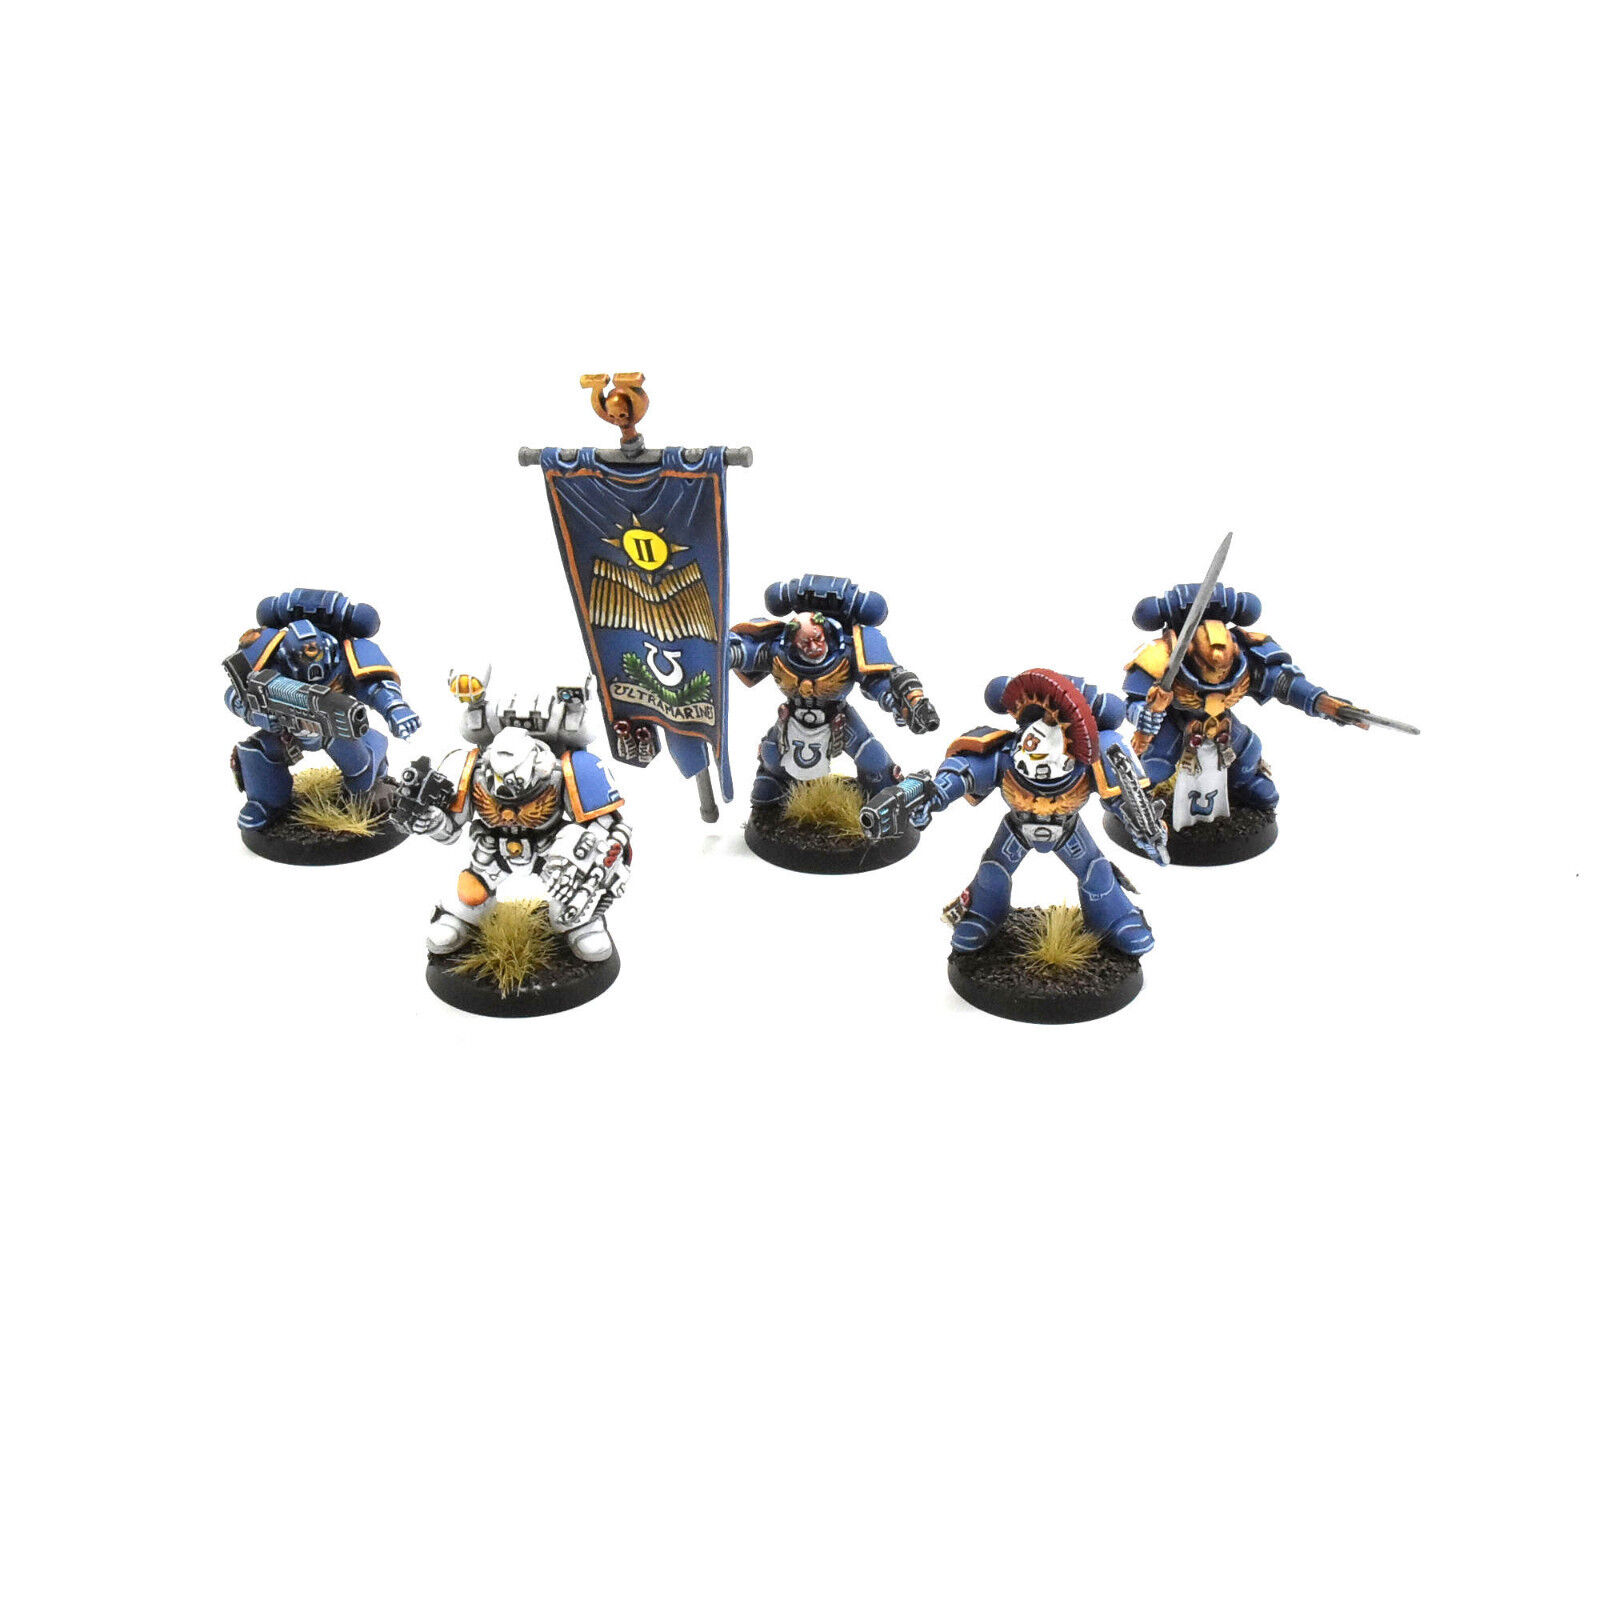 SPACE MARINES command squad PRO PAINTED Warhammer 40K ultramarines